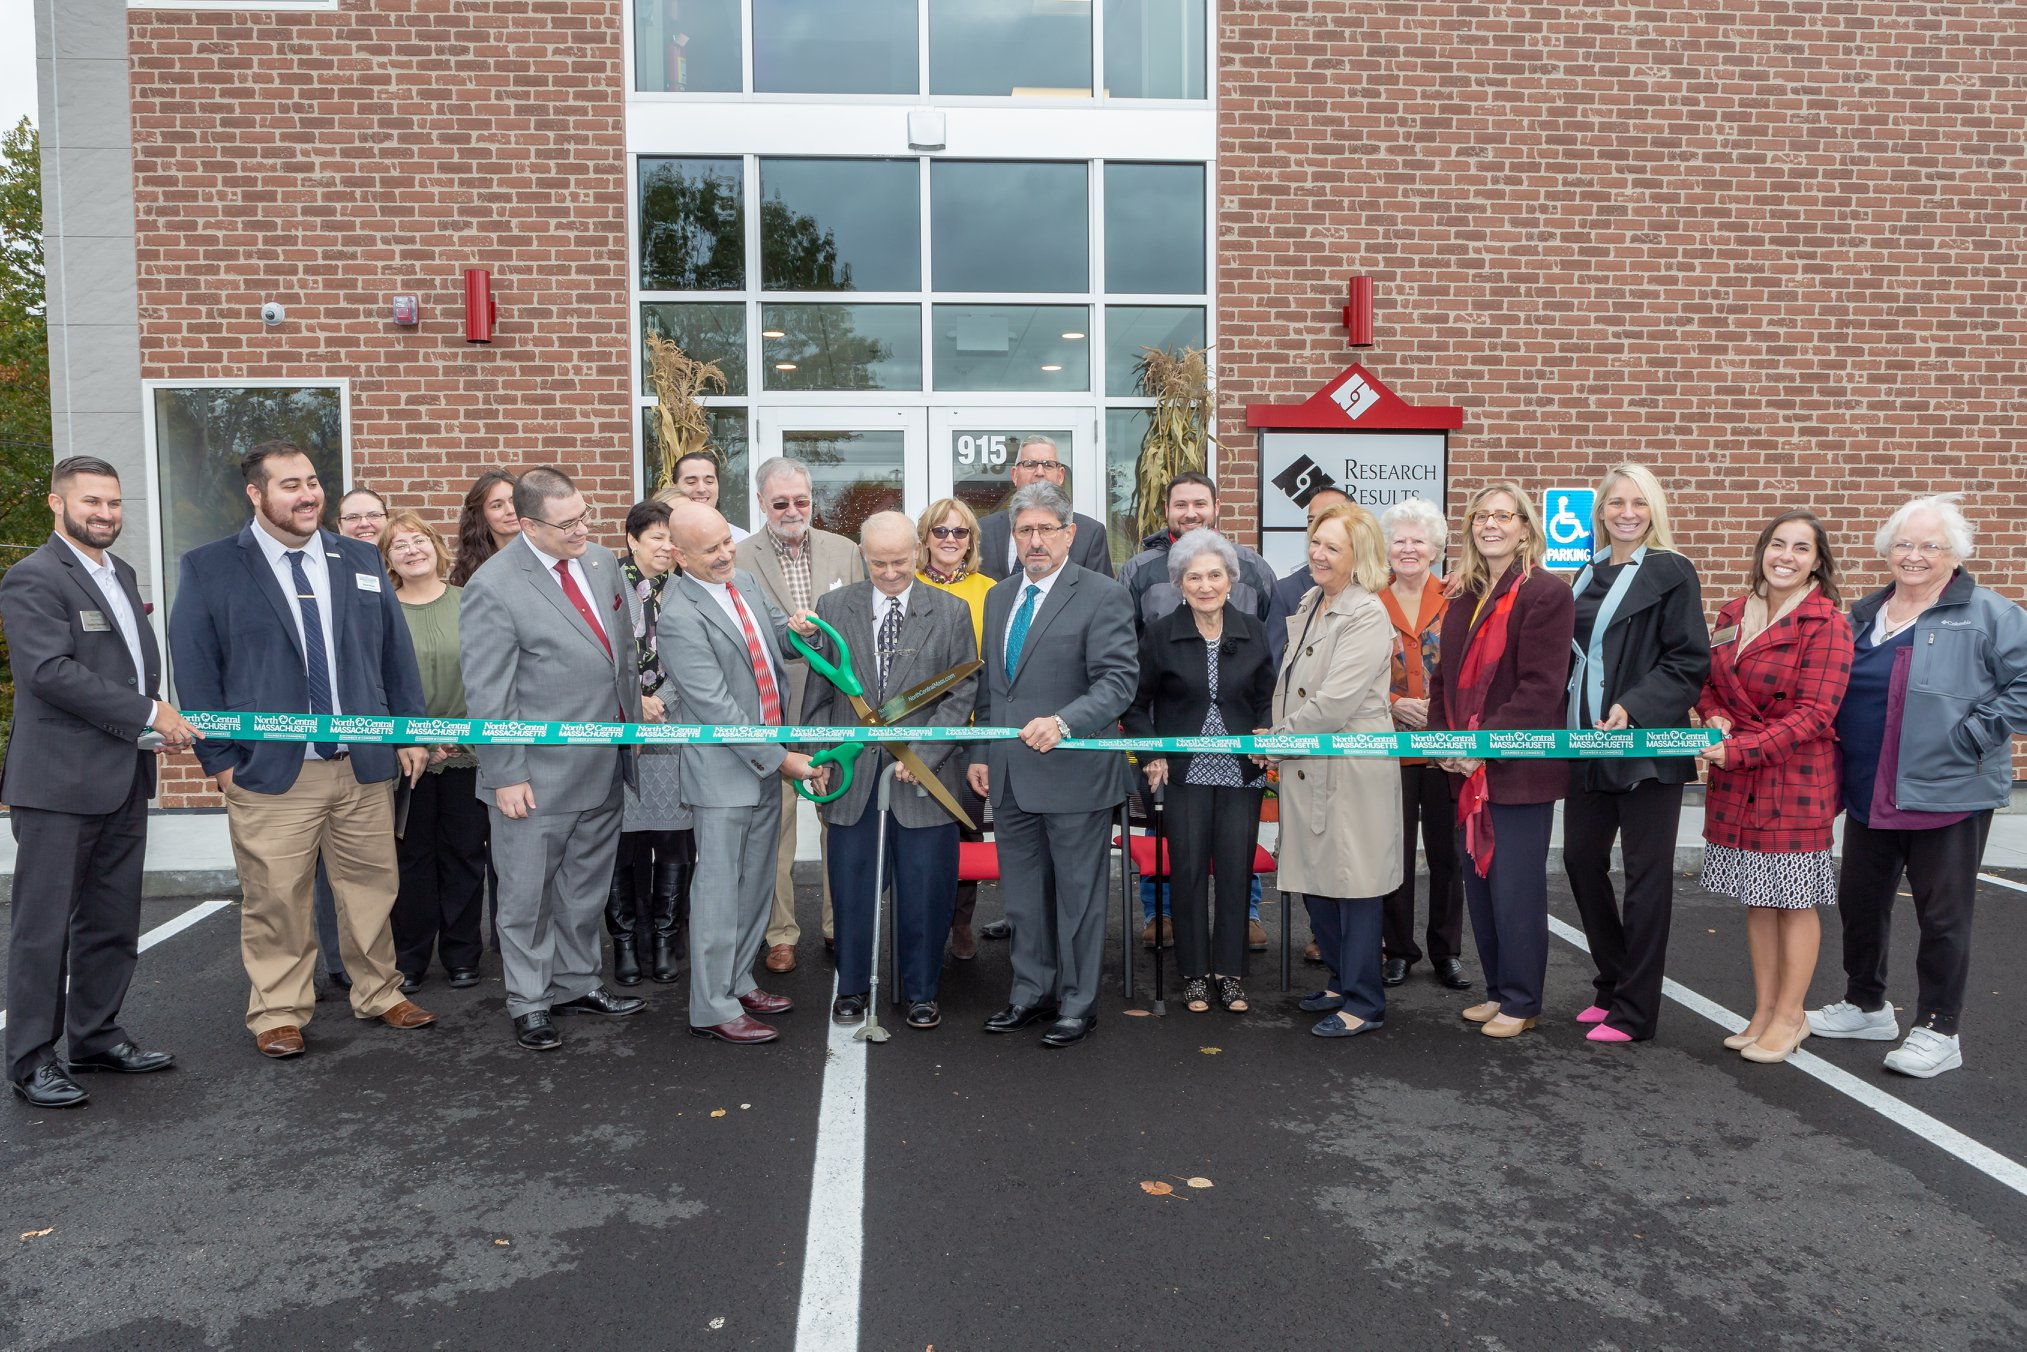 Ribbon Cutting for Research Results